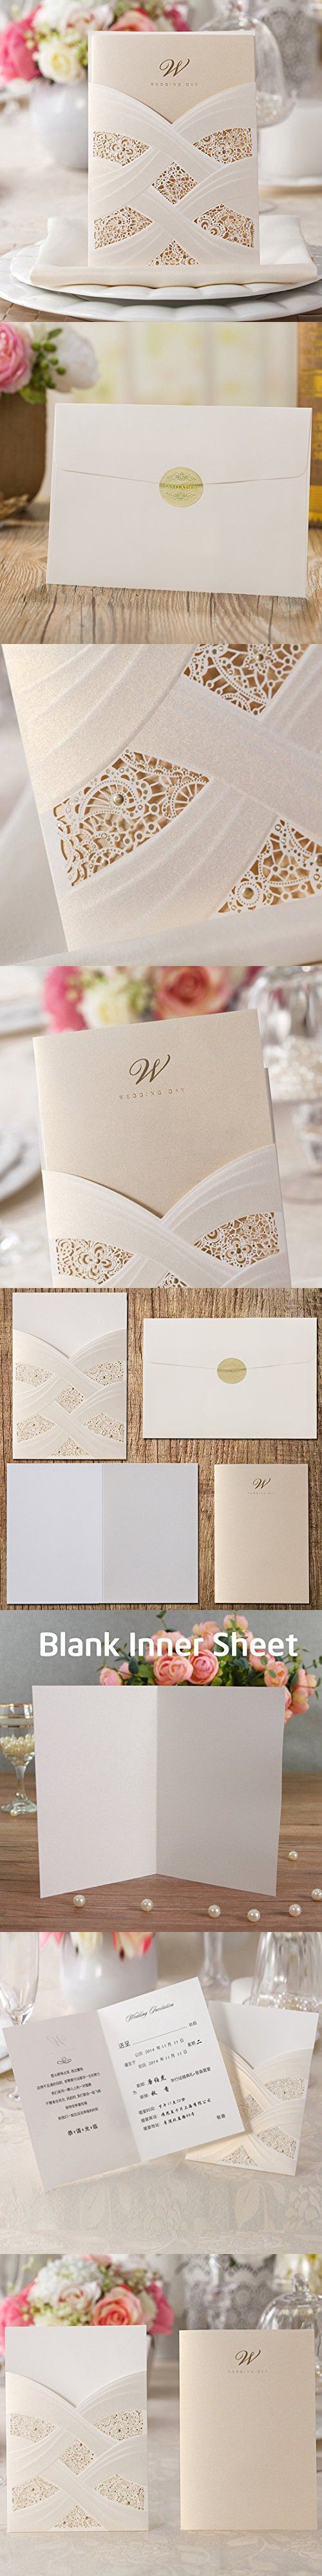 400 Best Wedding Invitations Images By Best Alexa On Pinterest